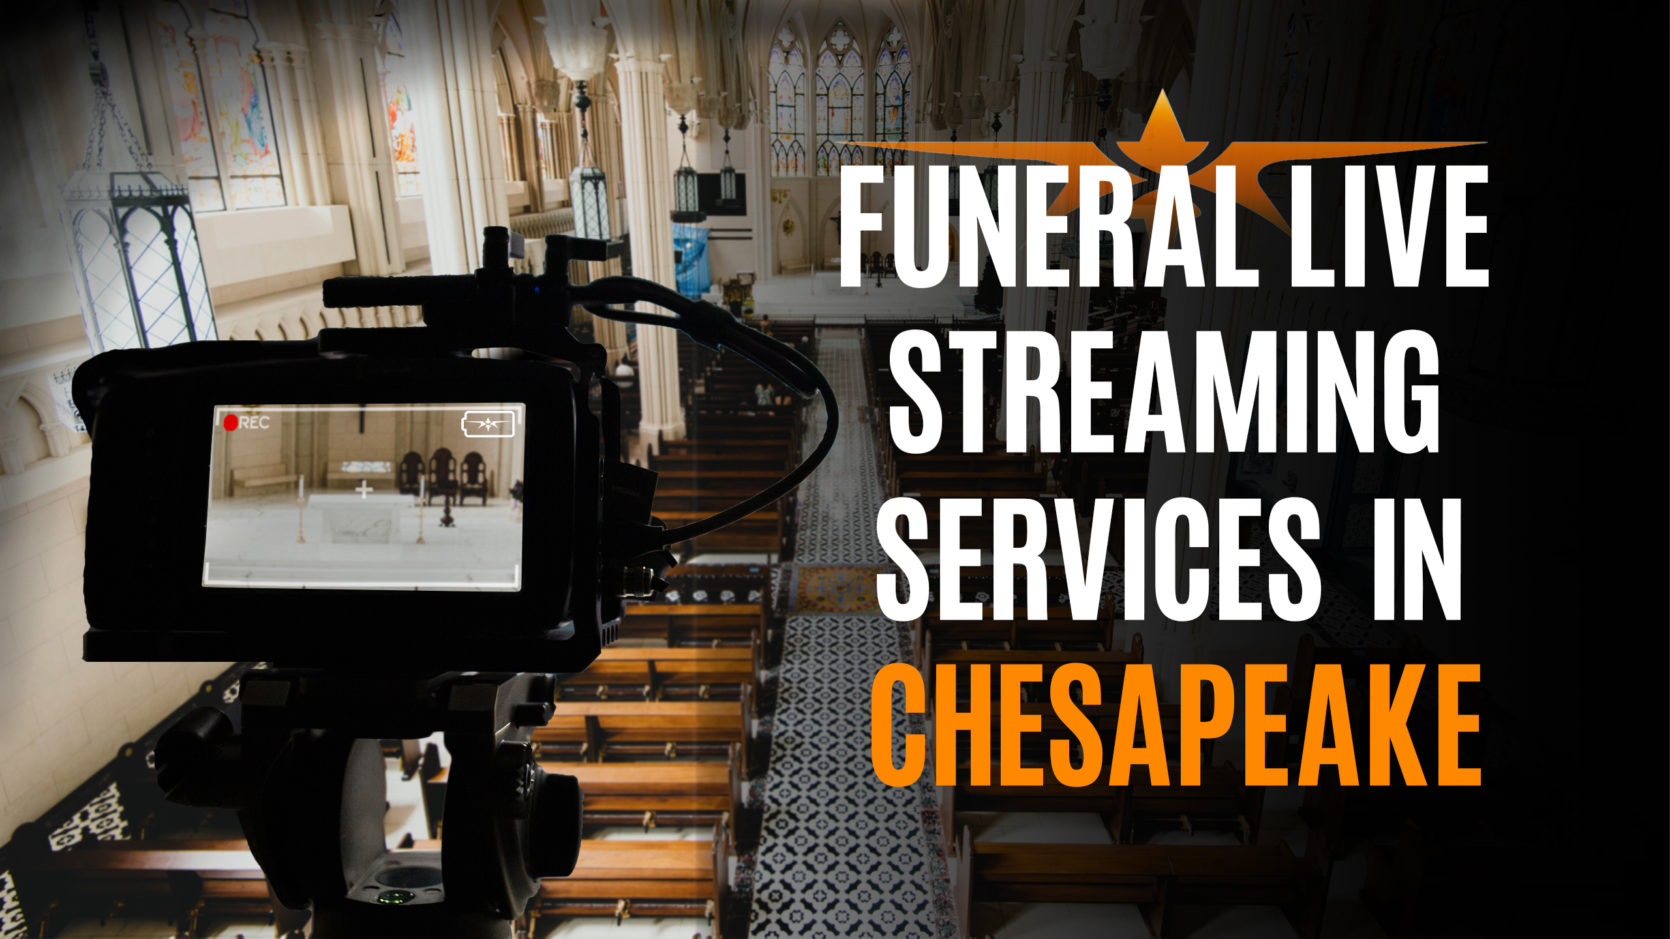 Funeral Live Streaming Services in Chesapeake